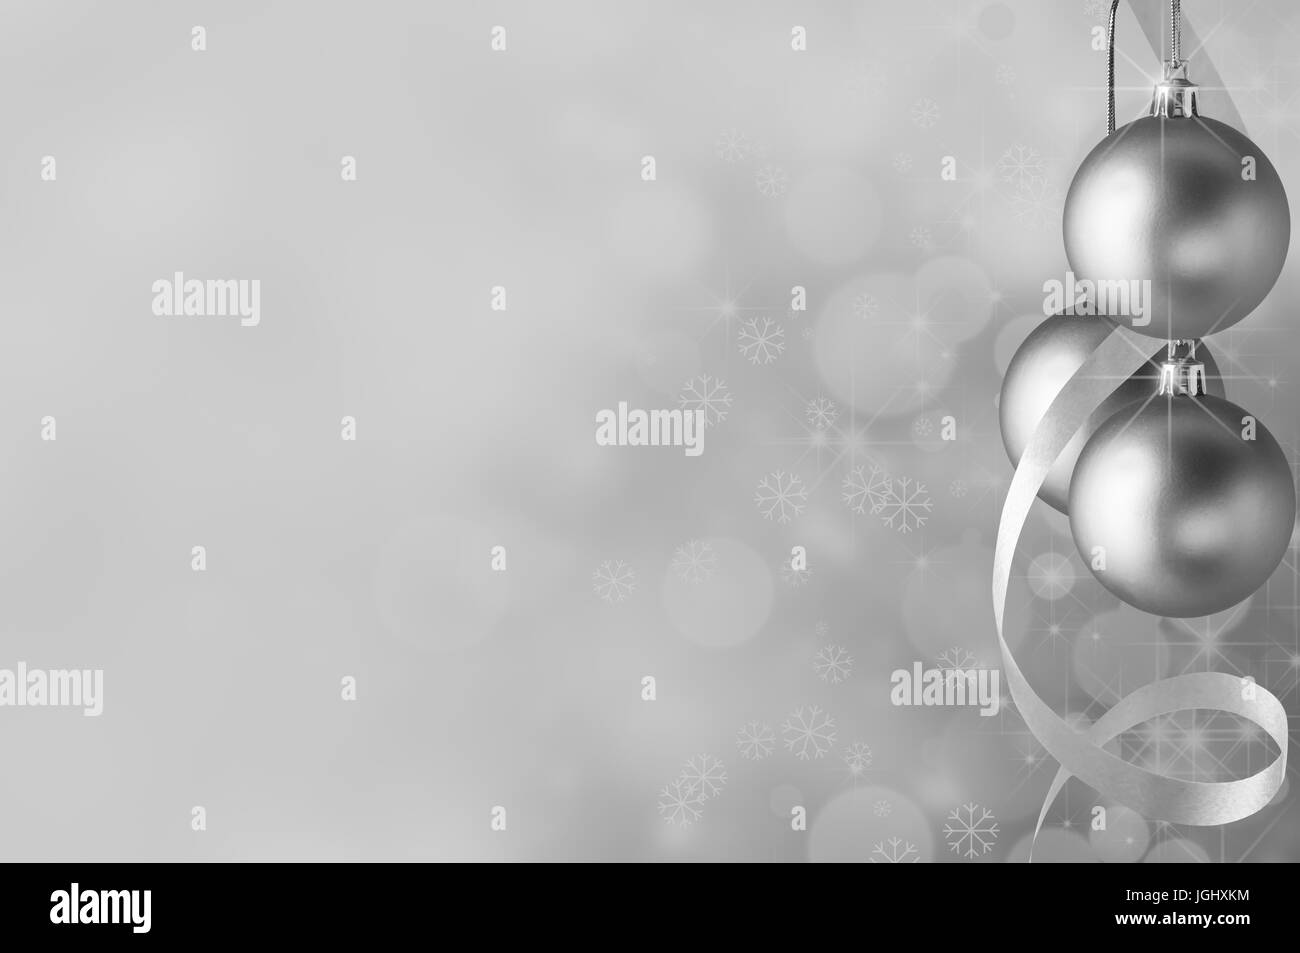 Festive silver Christmas baubles and spiral streamer on the right. Circles of bokeh glow, sparkling stars and snowflakes - Stock Image